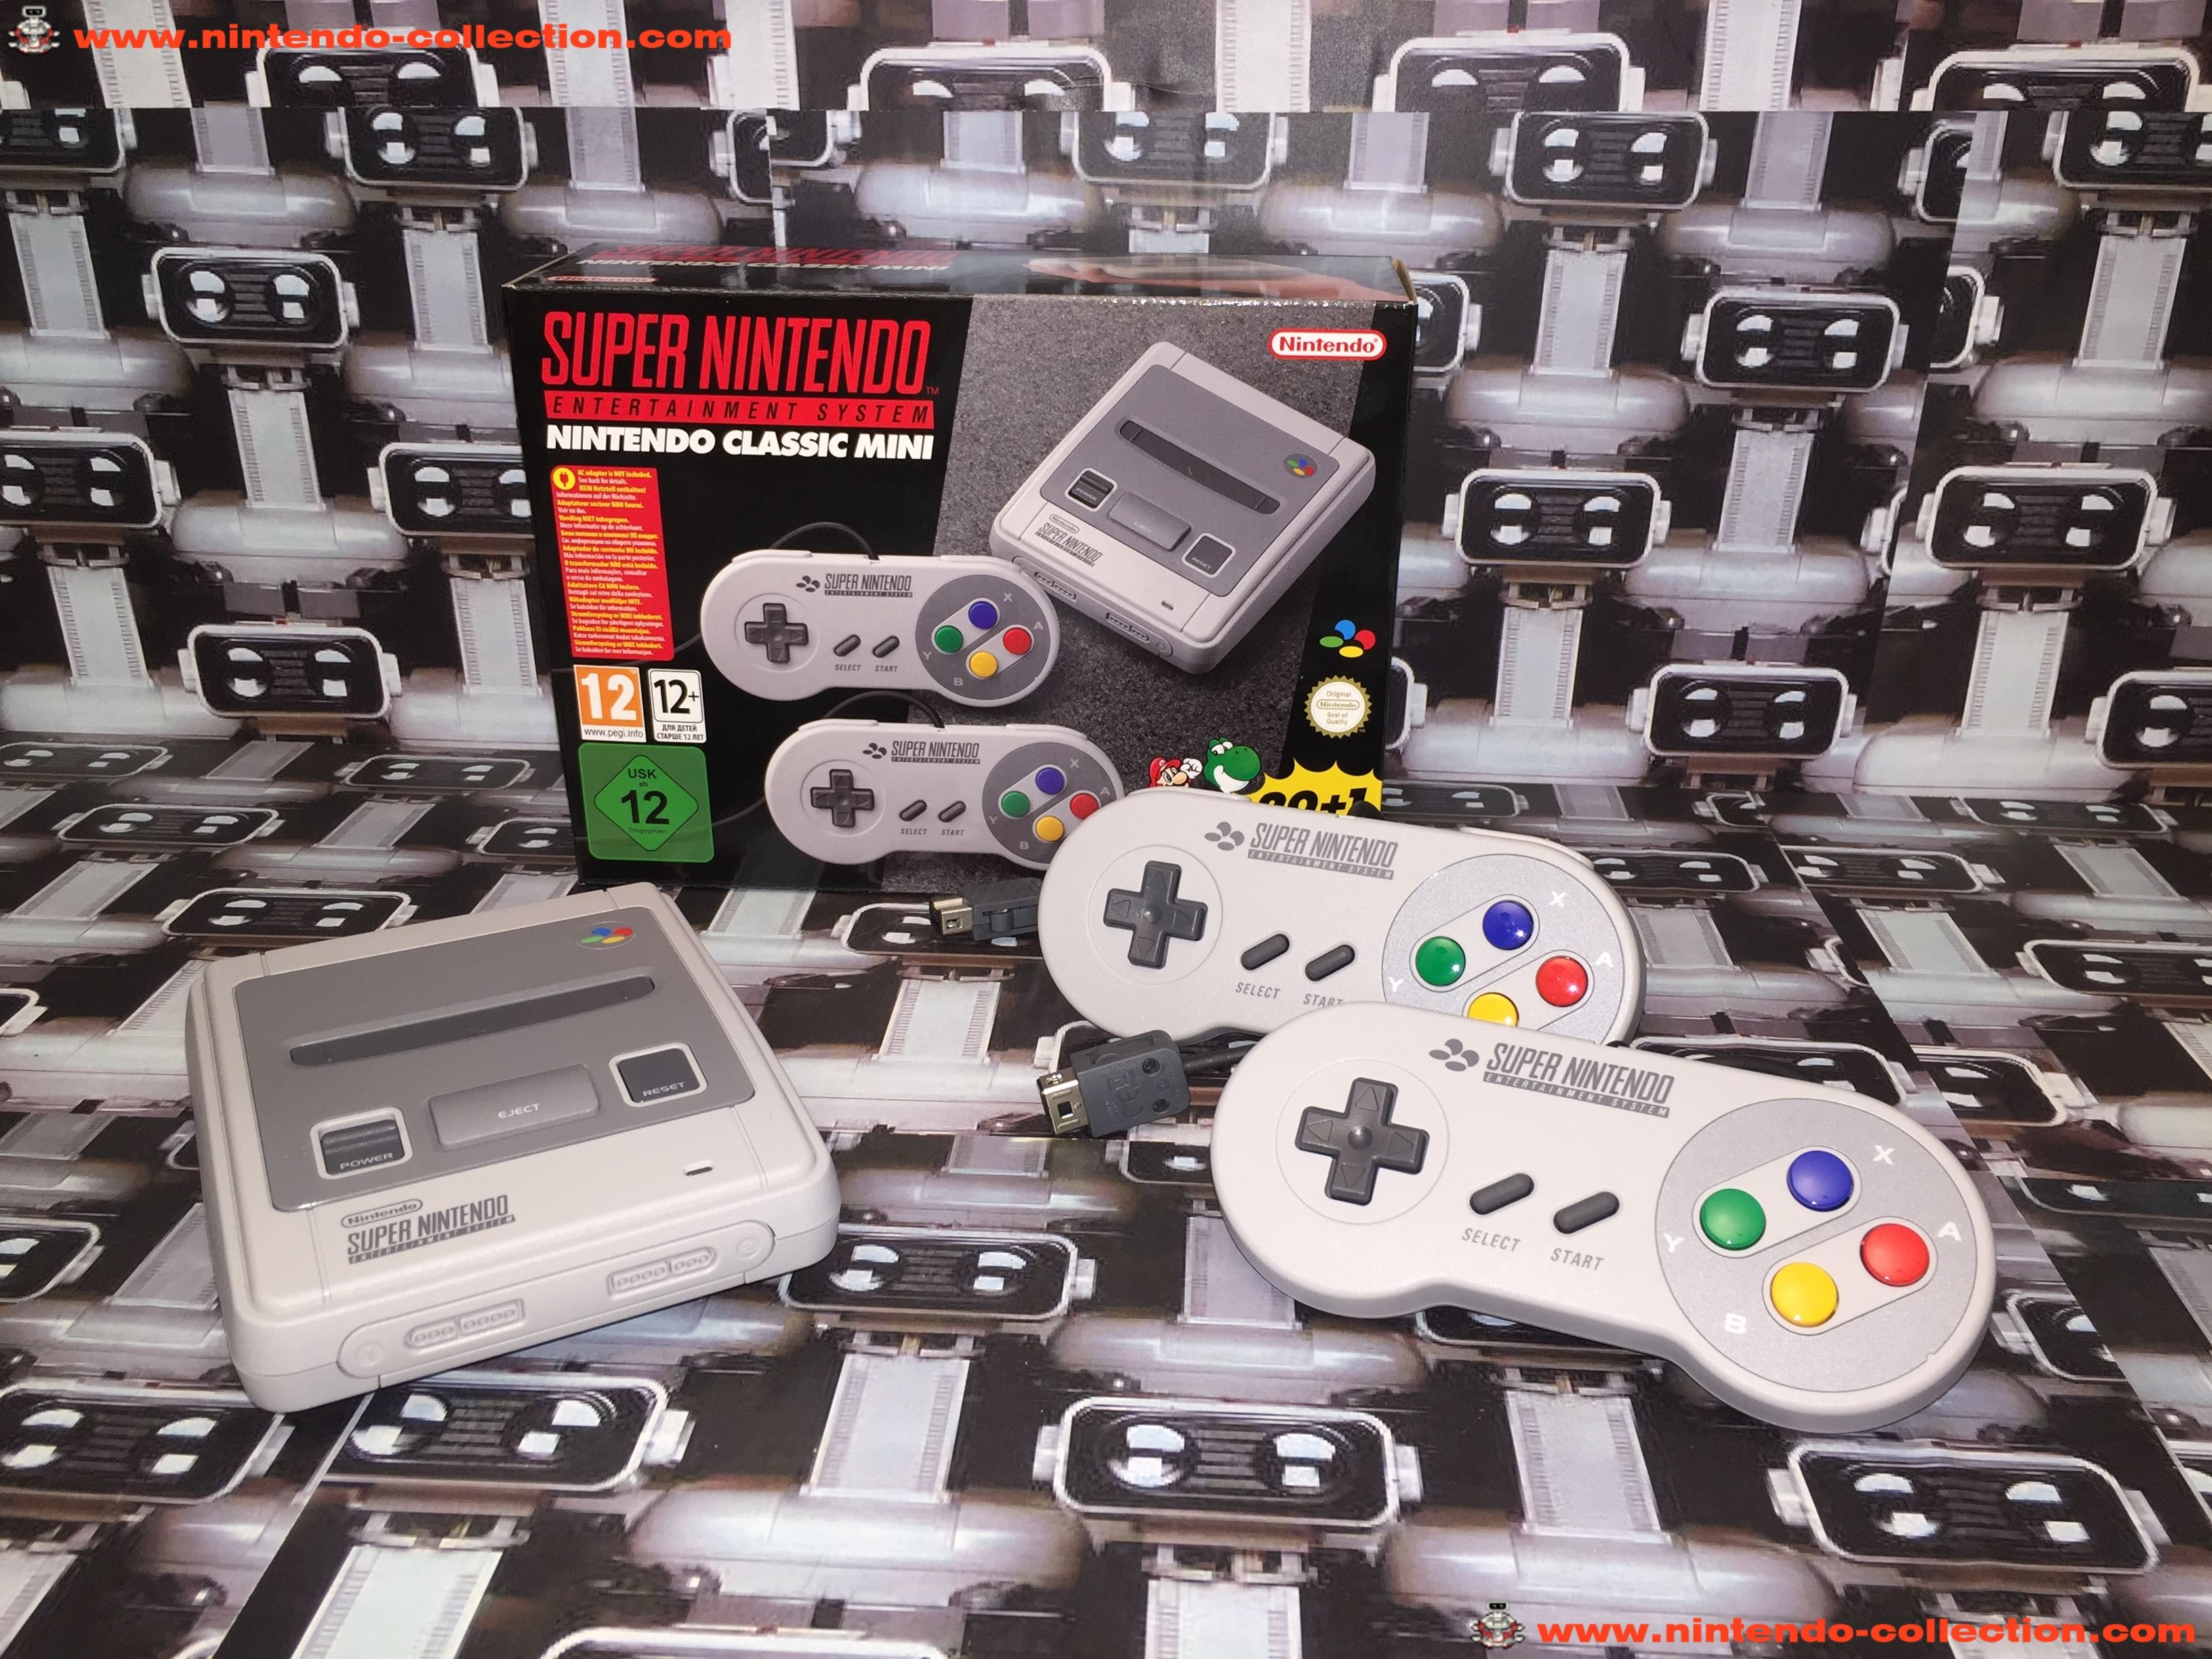 www.nintendo-collection.com - Nintendo Classic Mini Super Nes SNES Super Nintendo Entertainment syst